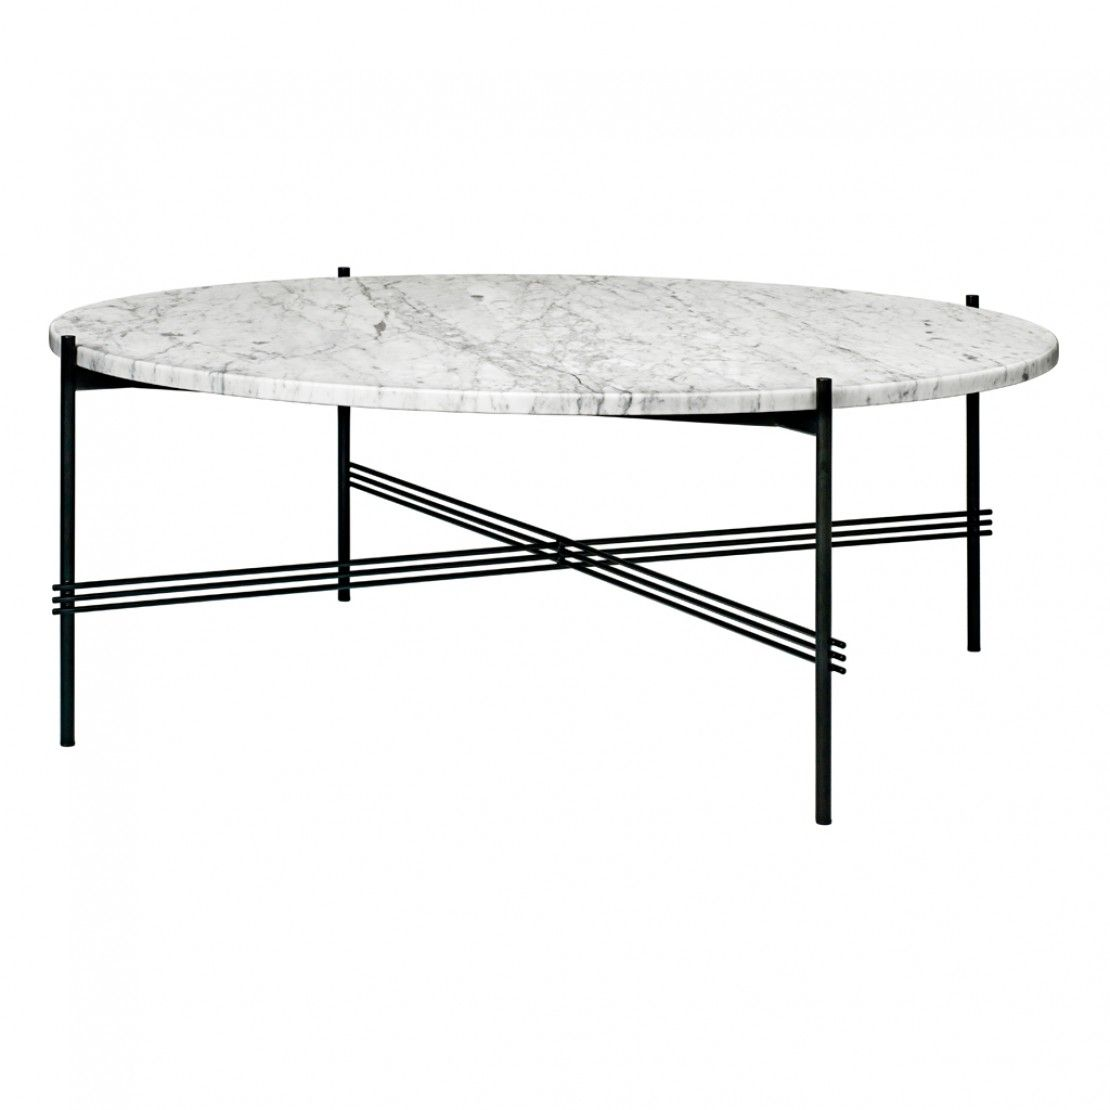 Ts Coffee Table Black Base Extra Large Coffee Table Round Coffee Table Marble Table [ 1110 x 1110 Pixel ]